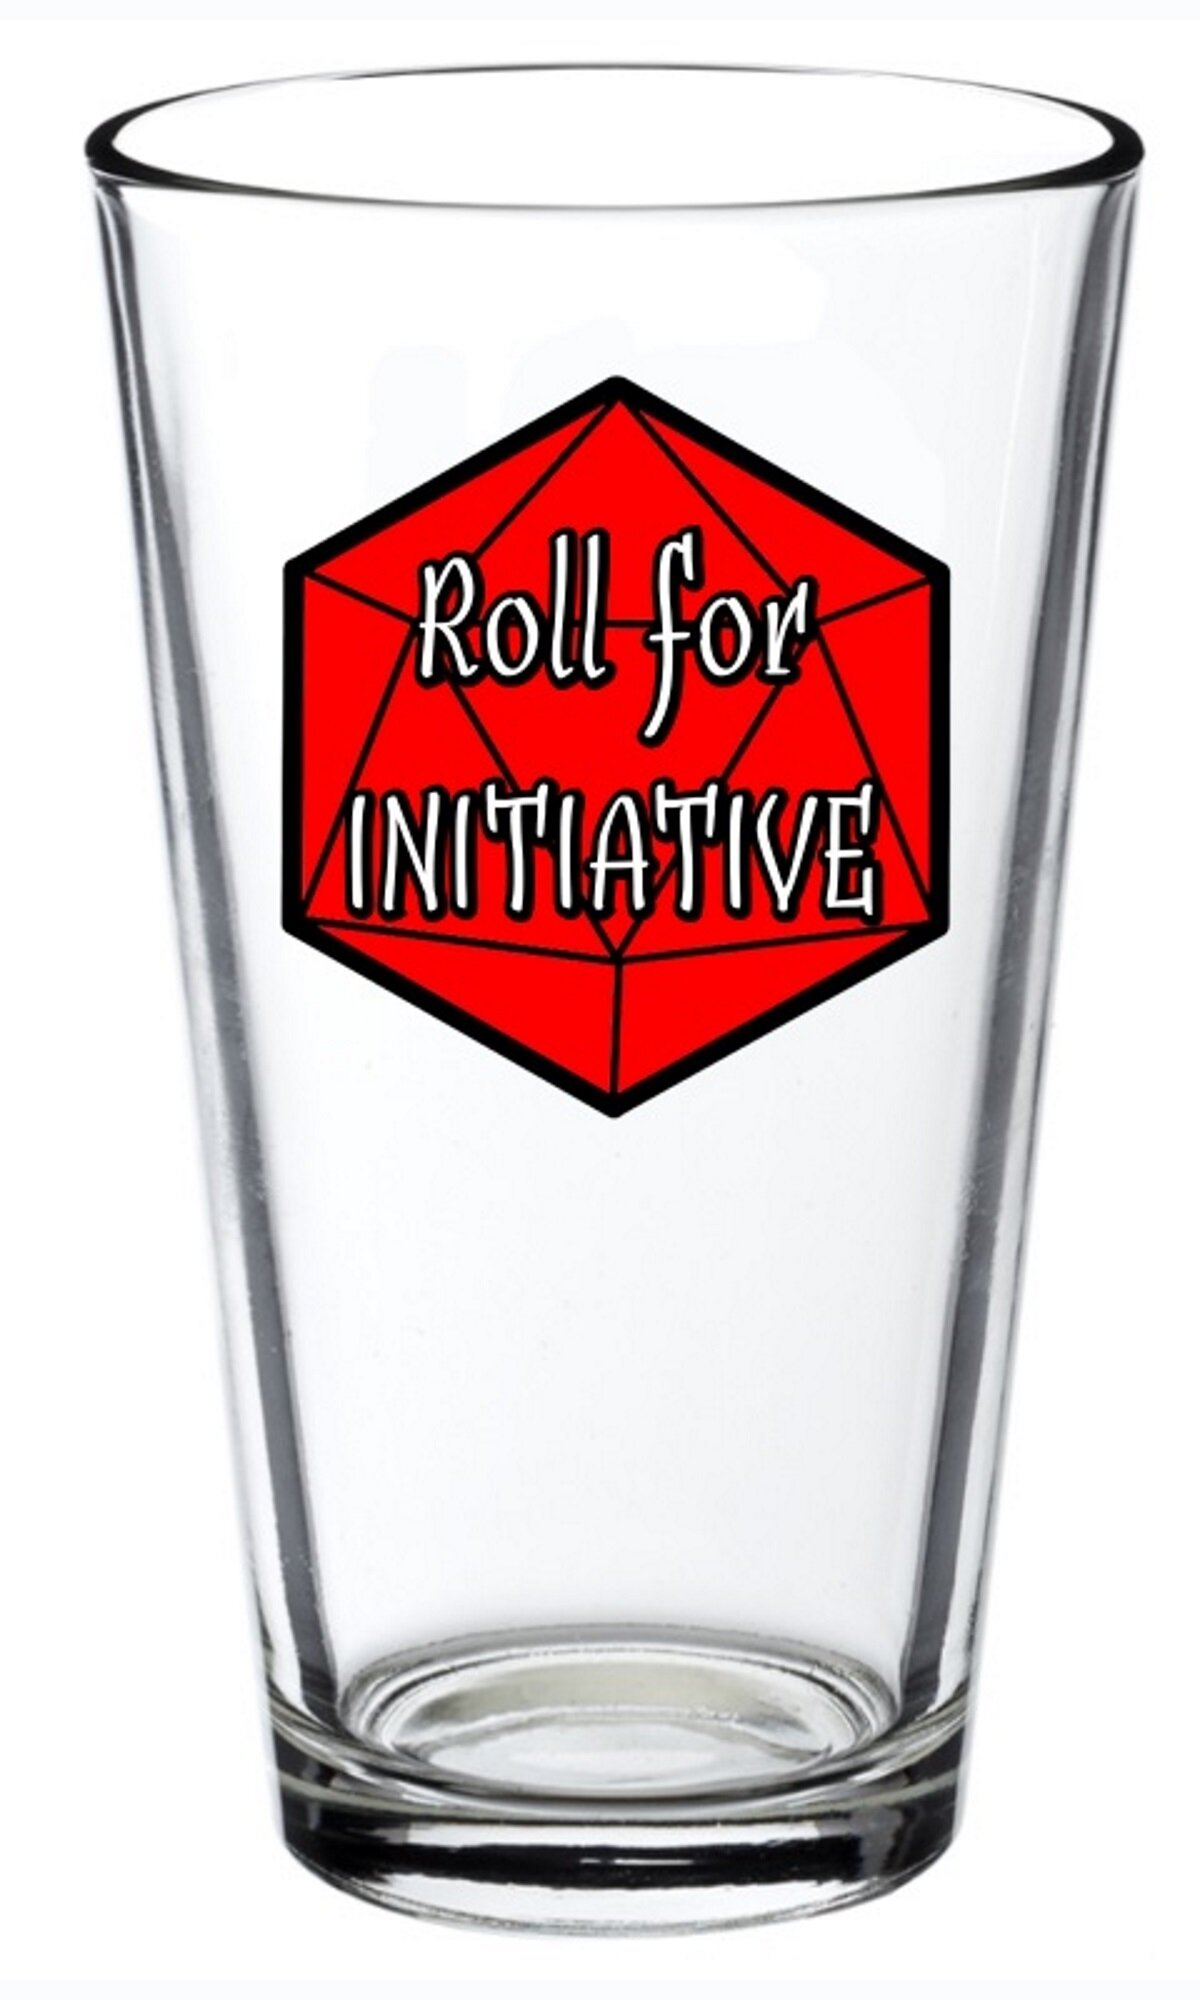 Roll for Initiative.